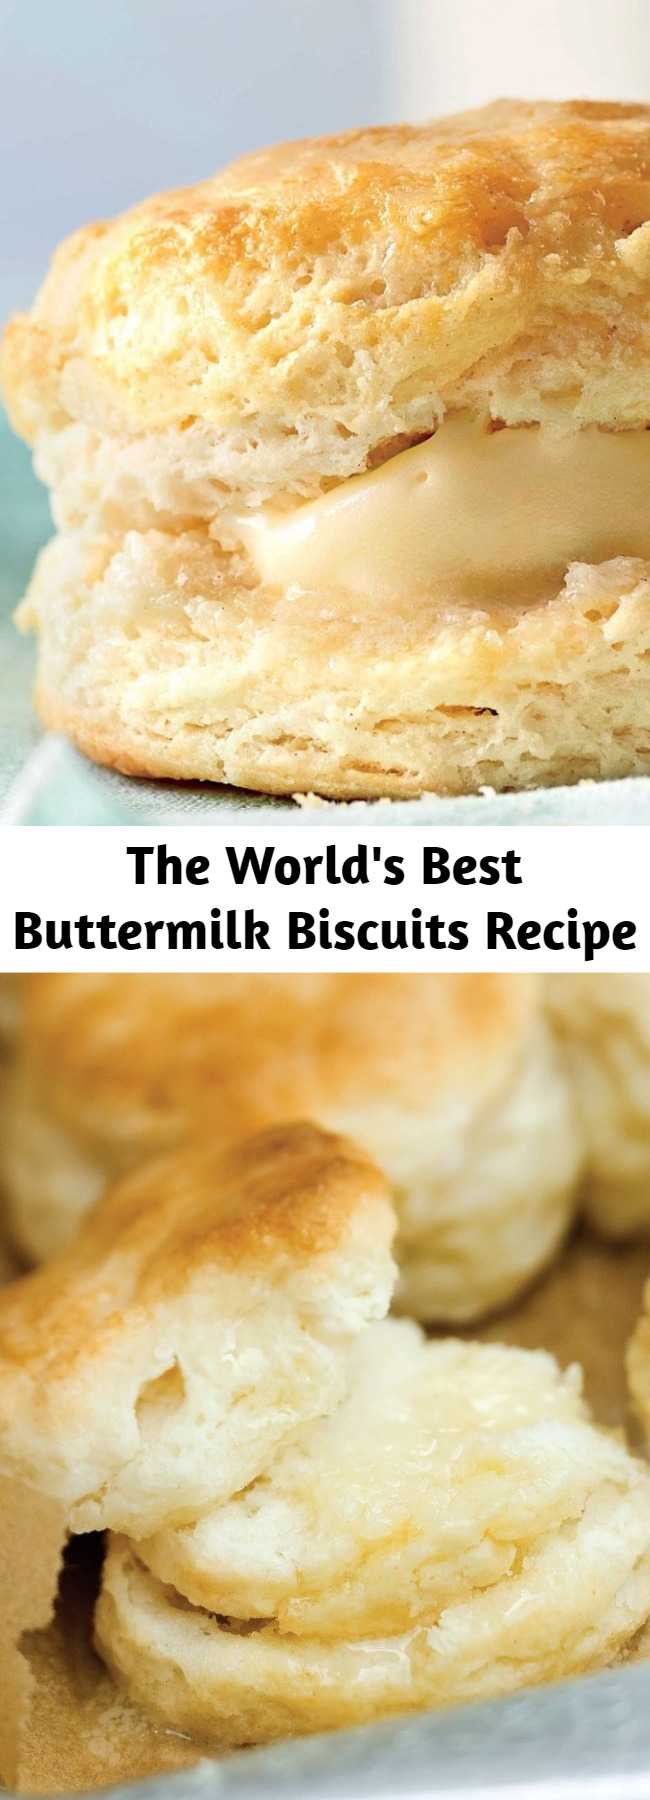 The World's Best Buttermilk Biscuits Recipe - This no-fail biscuit recipe will make you look like a pro, even if this is your first attempt at biscuit-making. And if you're looking for something a little beyond a basic biscuit, try one of our delicious variations. However you make them, you'll be rewarded with layer upon buttery layer of biscuit perfection. #buttermilkbiscuits